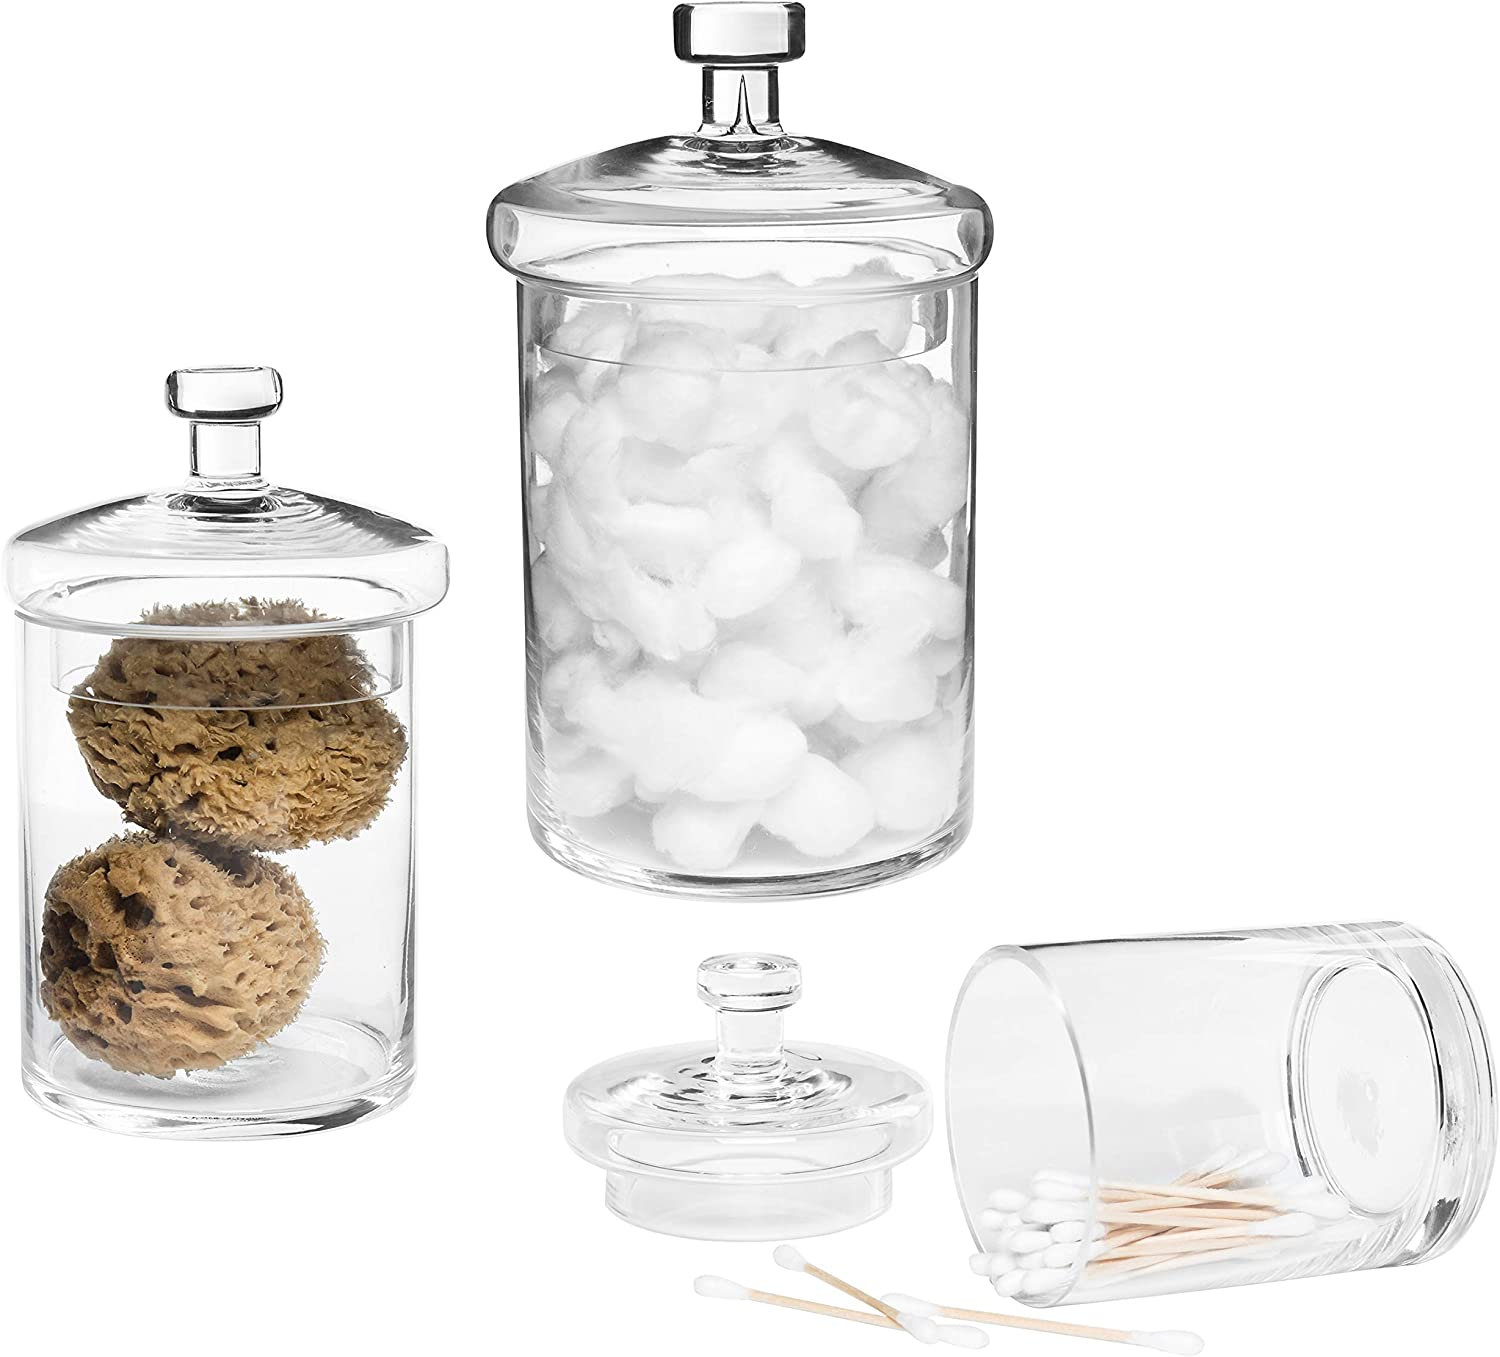 MyGift Decorative favorite Clear Glass Cylinder Jars Apothecary Challenge the lowest price of Japan ☆ w Storage